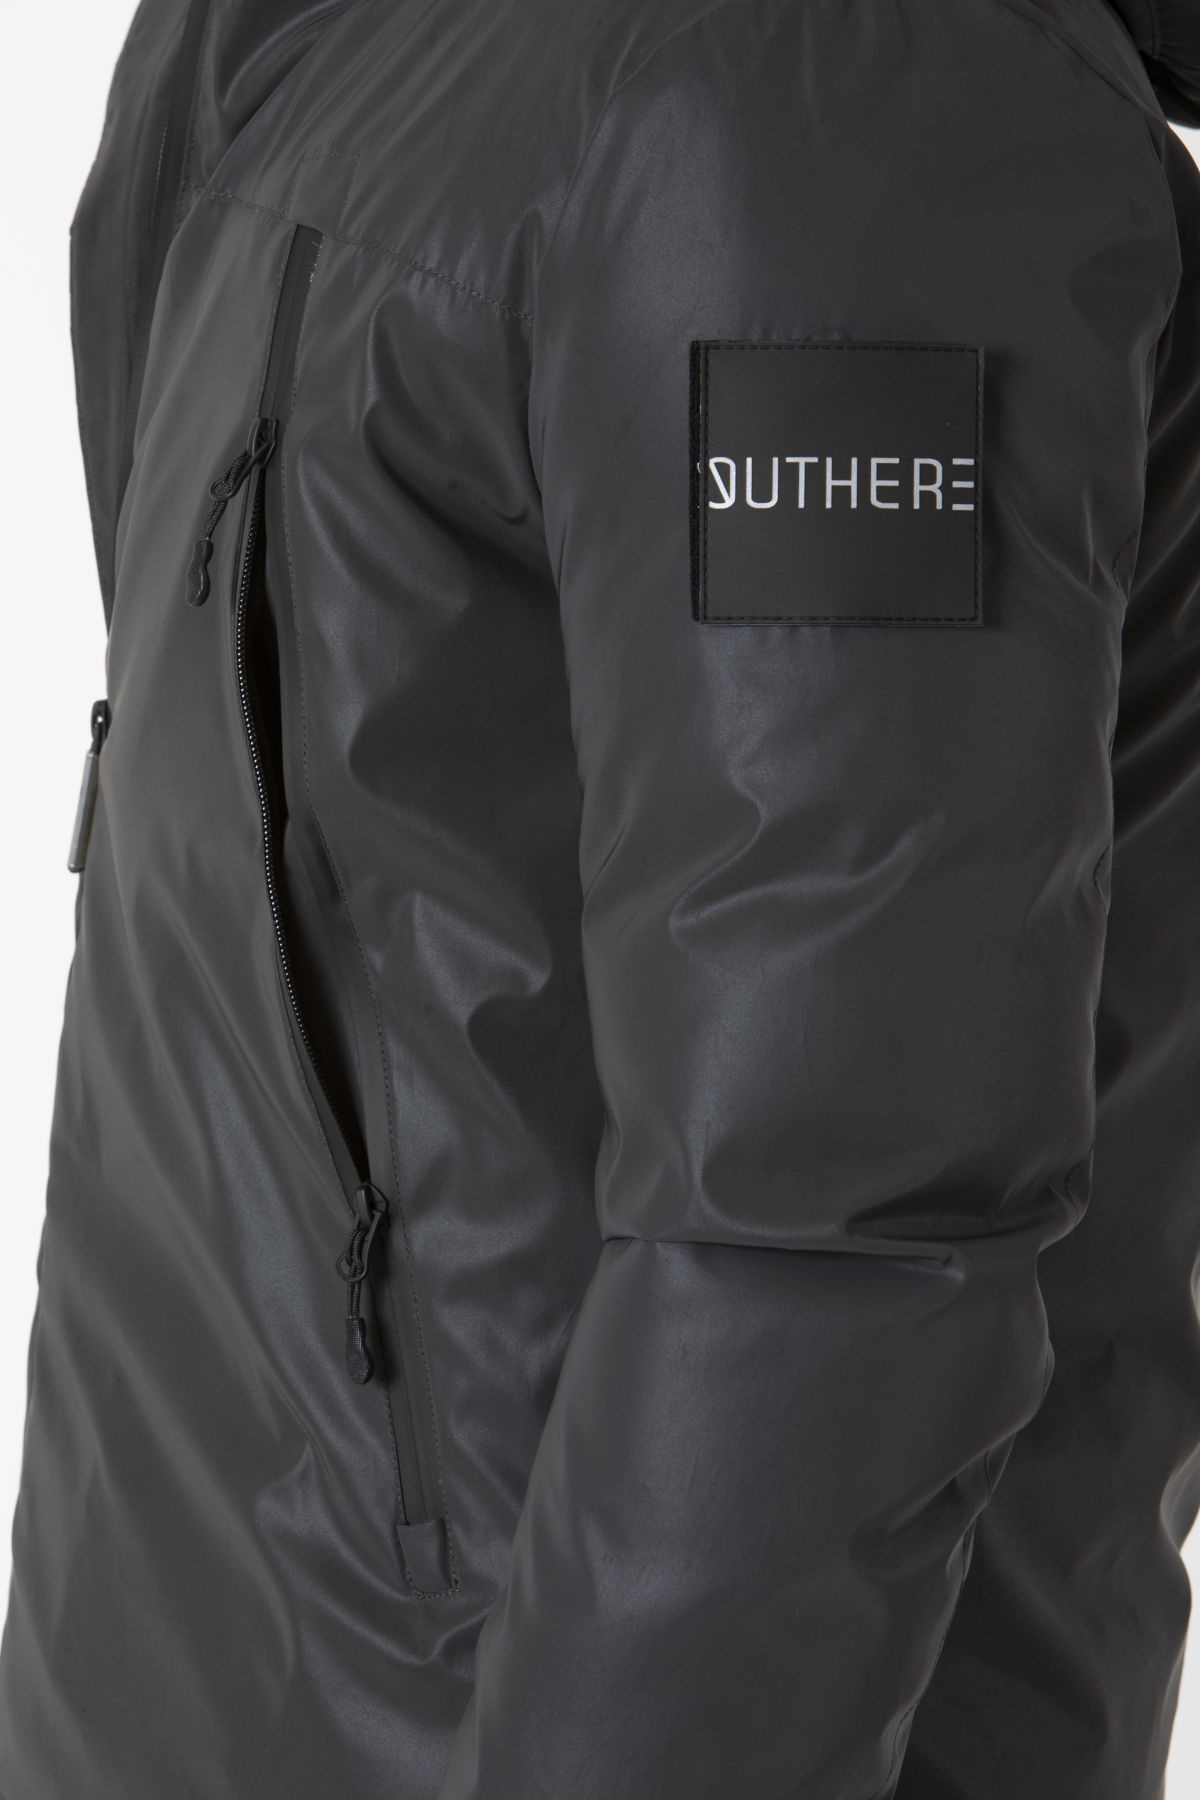 SONAR X Jacket for man OUTEHRE F/W 19-20